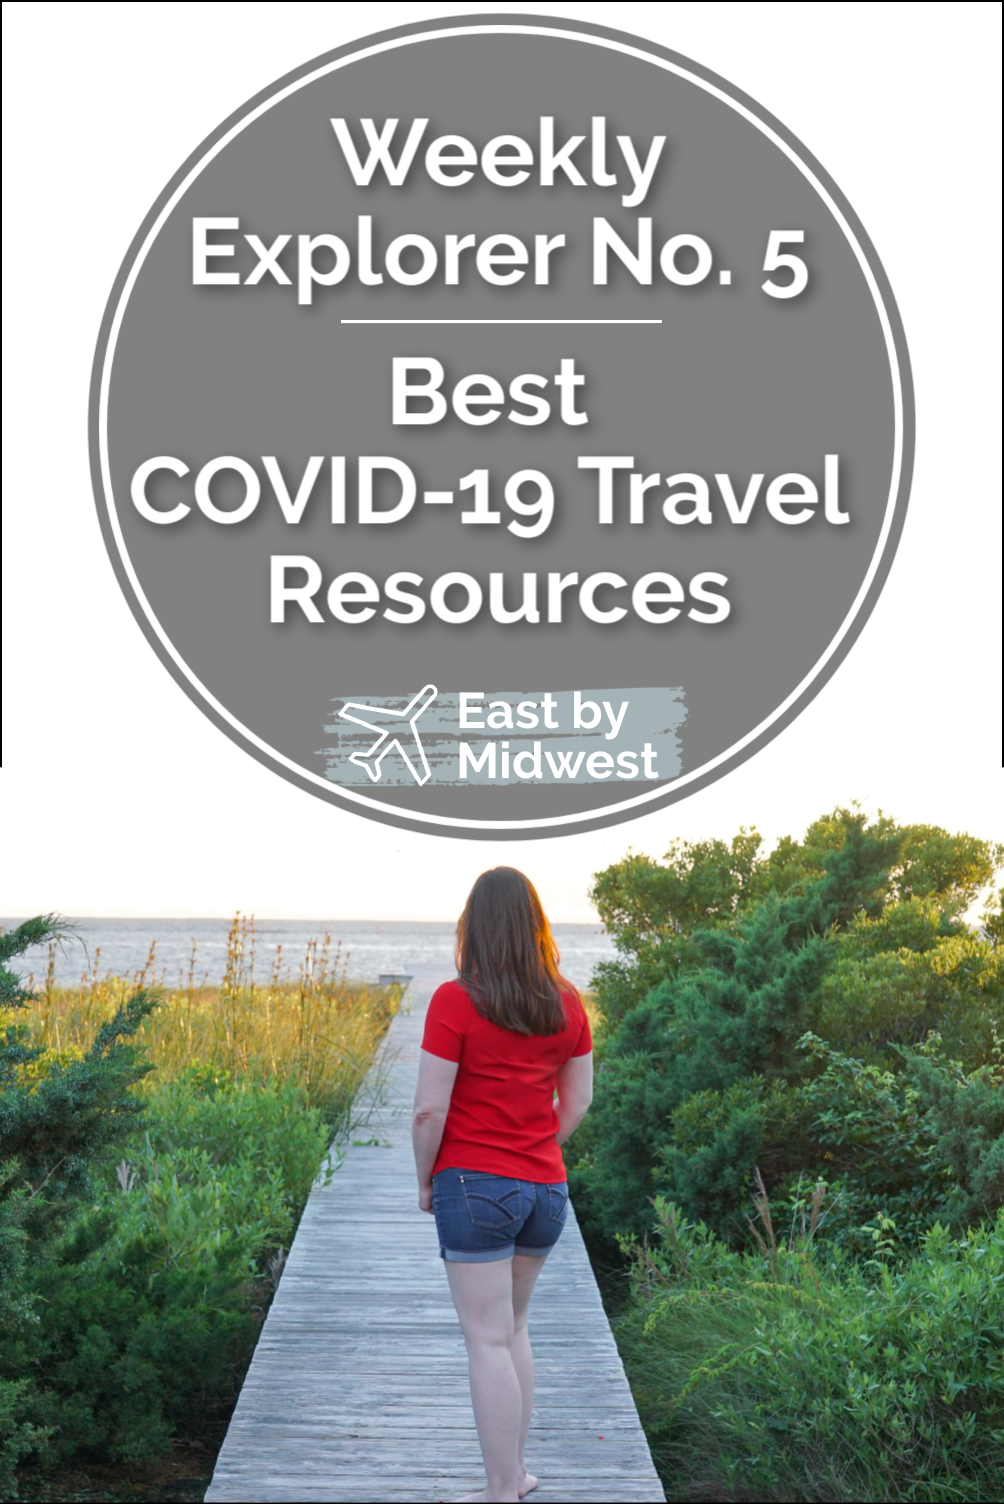 Weekly Explorer No. 5: Best COVID-19 Travel Resources